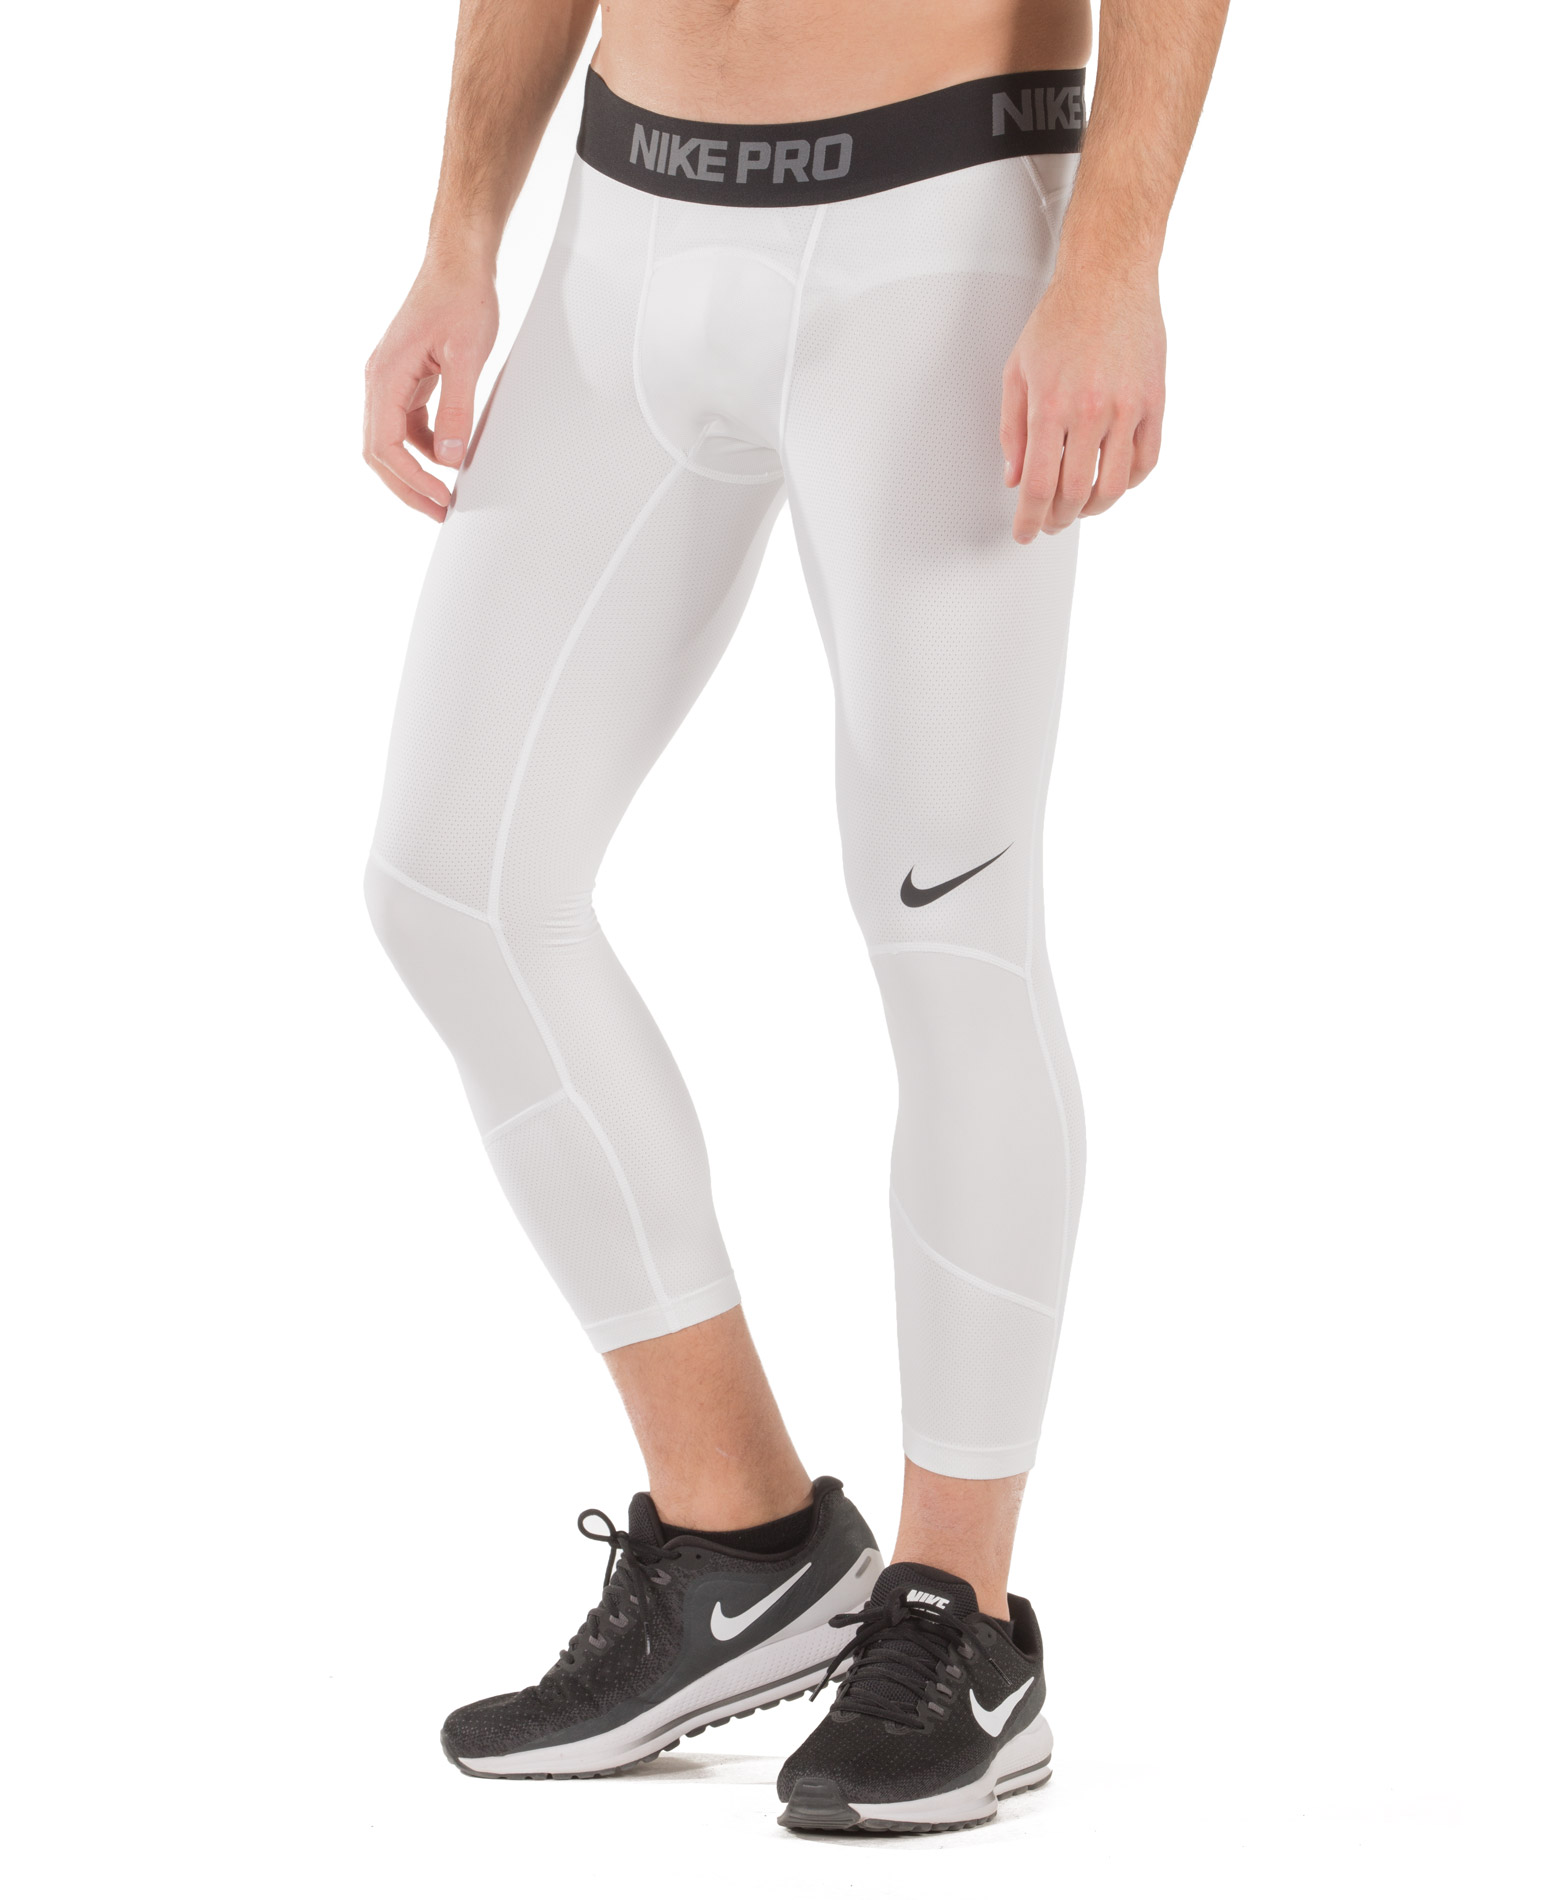 ee24031007d0 NIKE M NP DRY TIGHT 3QY BBALL 925821-100 Λευκό - Glami.gr